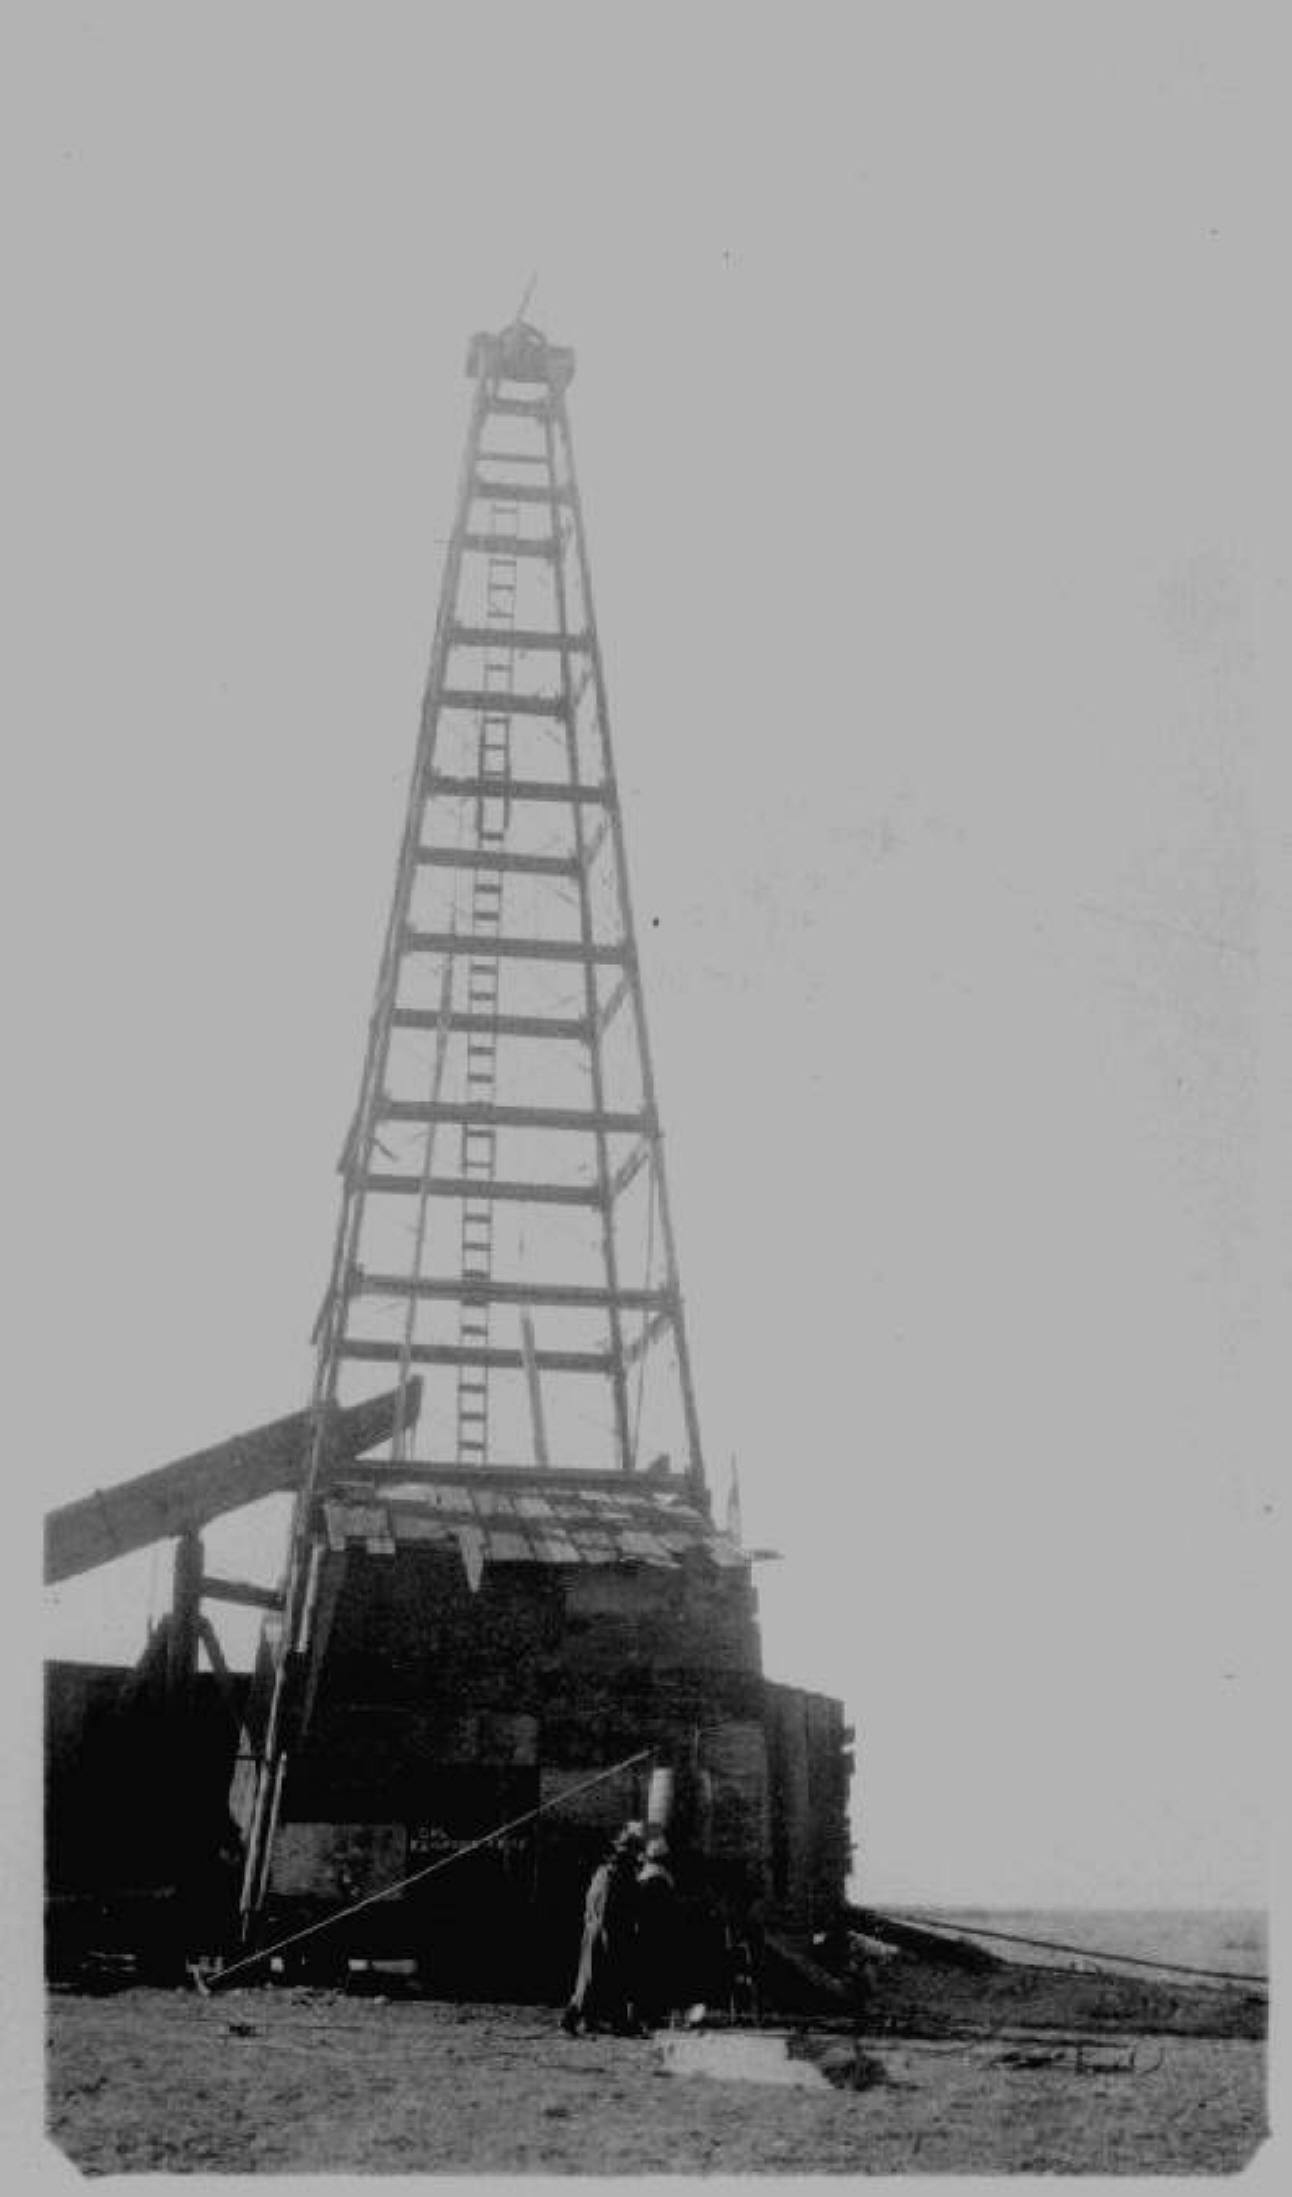 early drilling rig ca 1920s